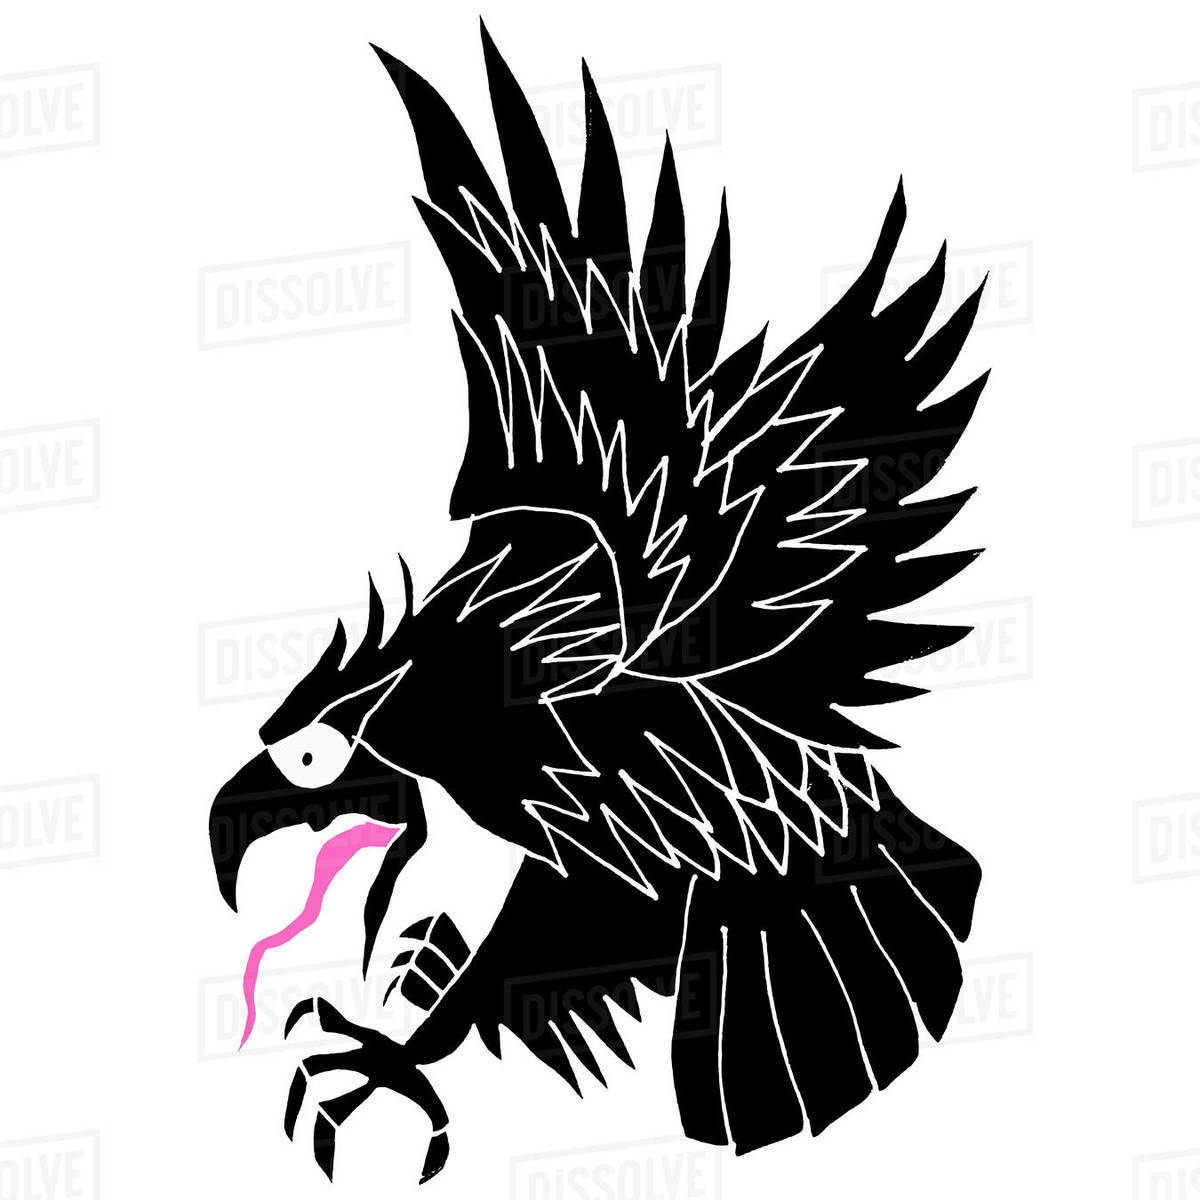 Illustration of flying eagle against white background Royalty-free stock photo